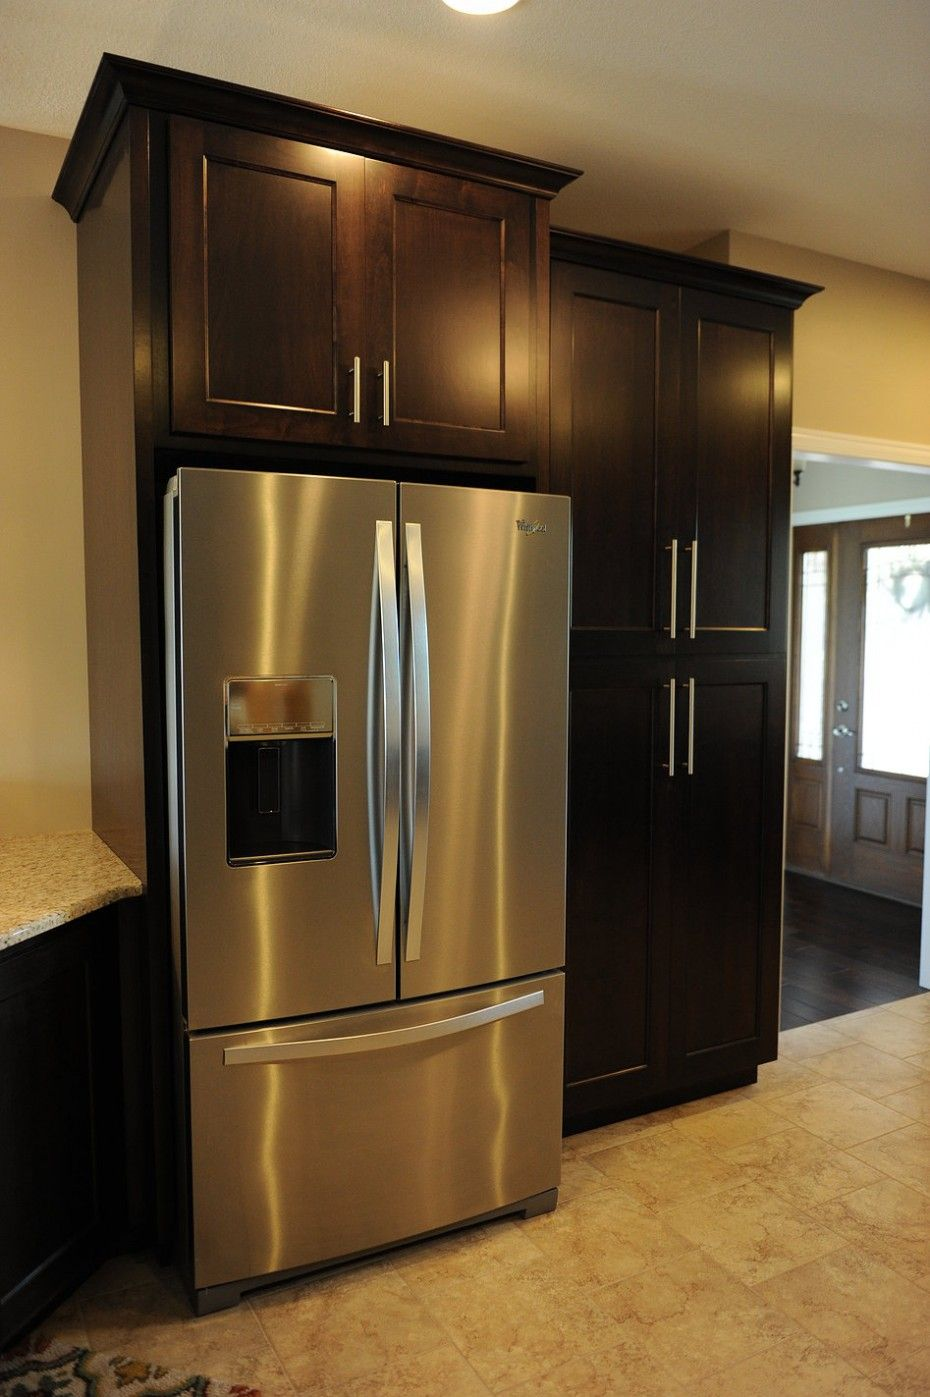 Built in refrigerator cabinet - Black Polished Oak Wood Tall Free Standing Pantry Cabinet Storage Built In Refrigerator Cupboard With Kitchen